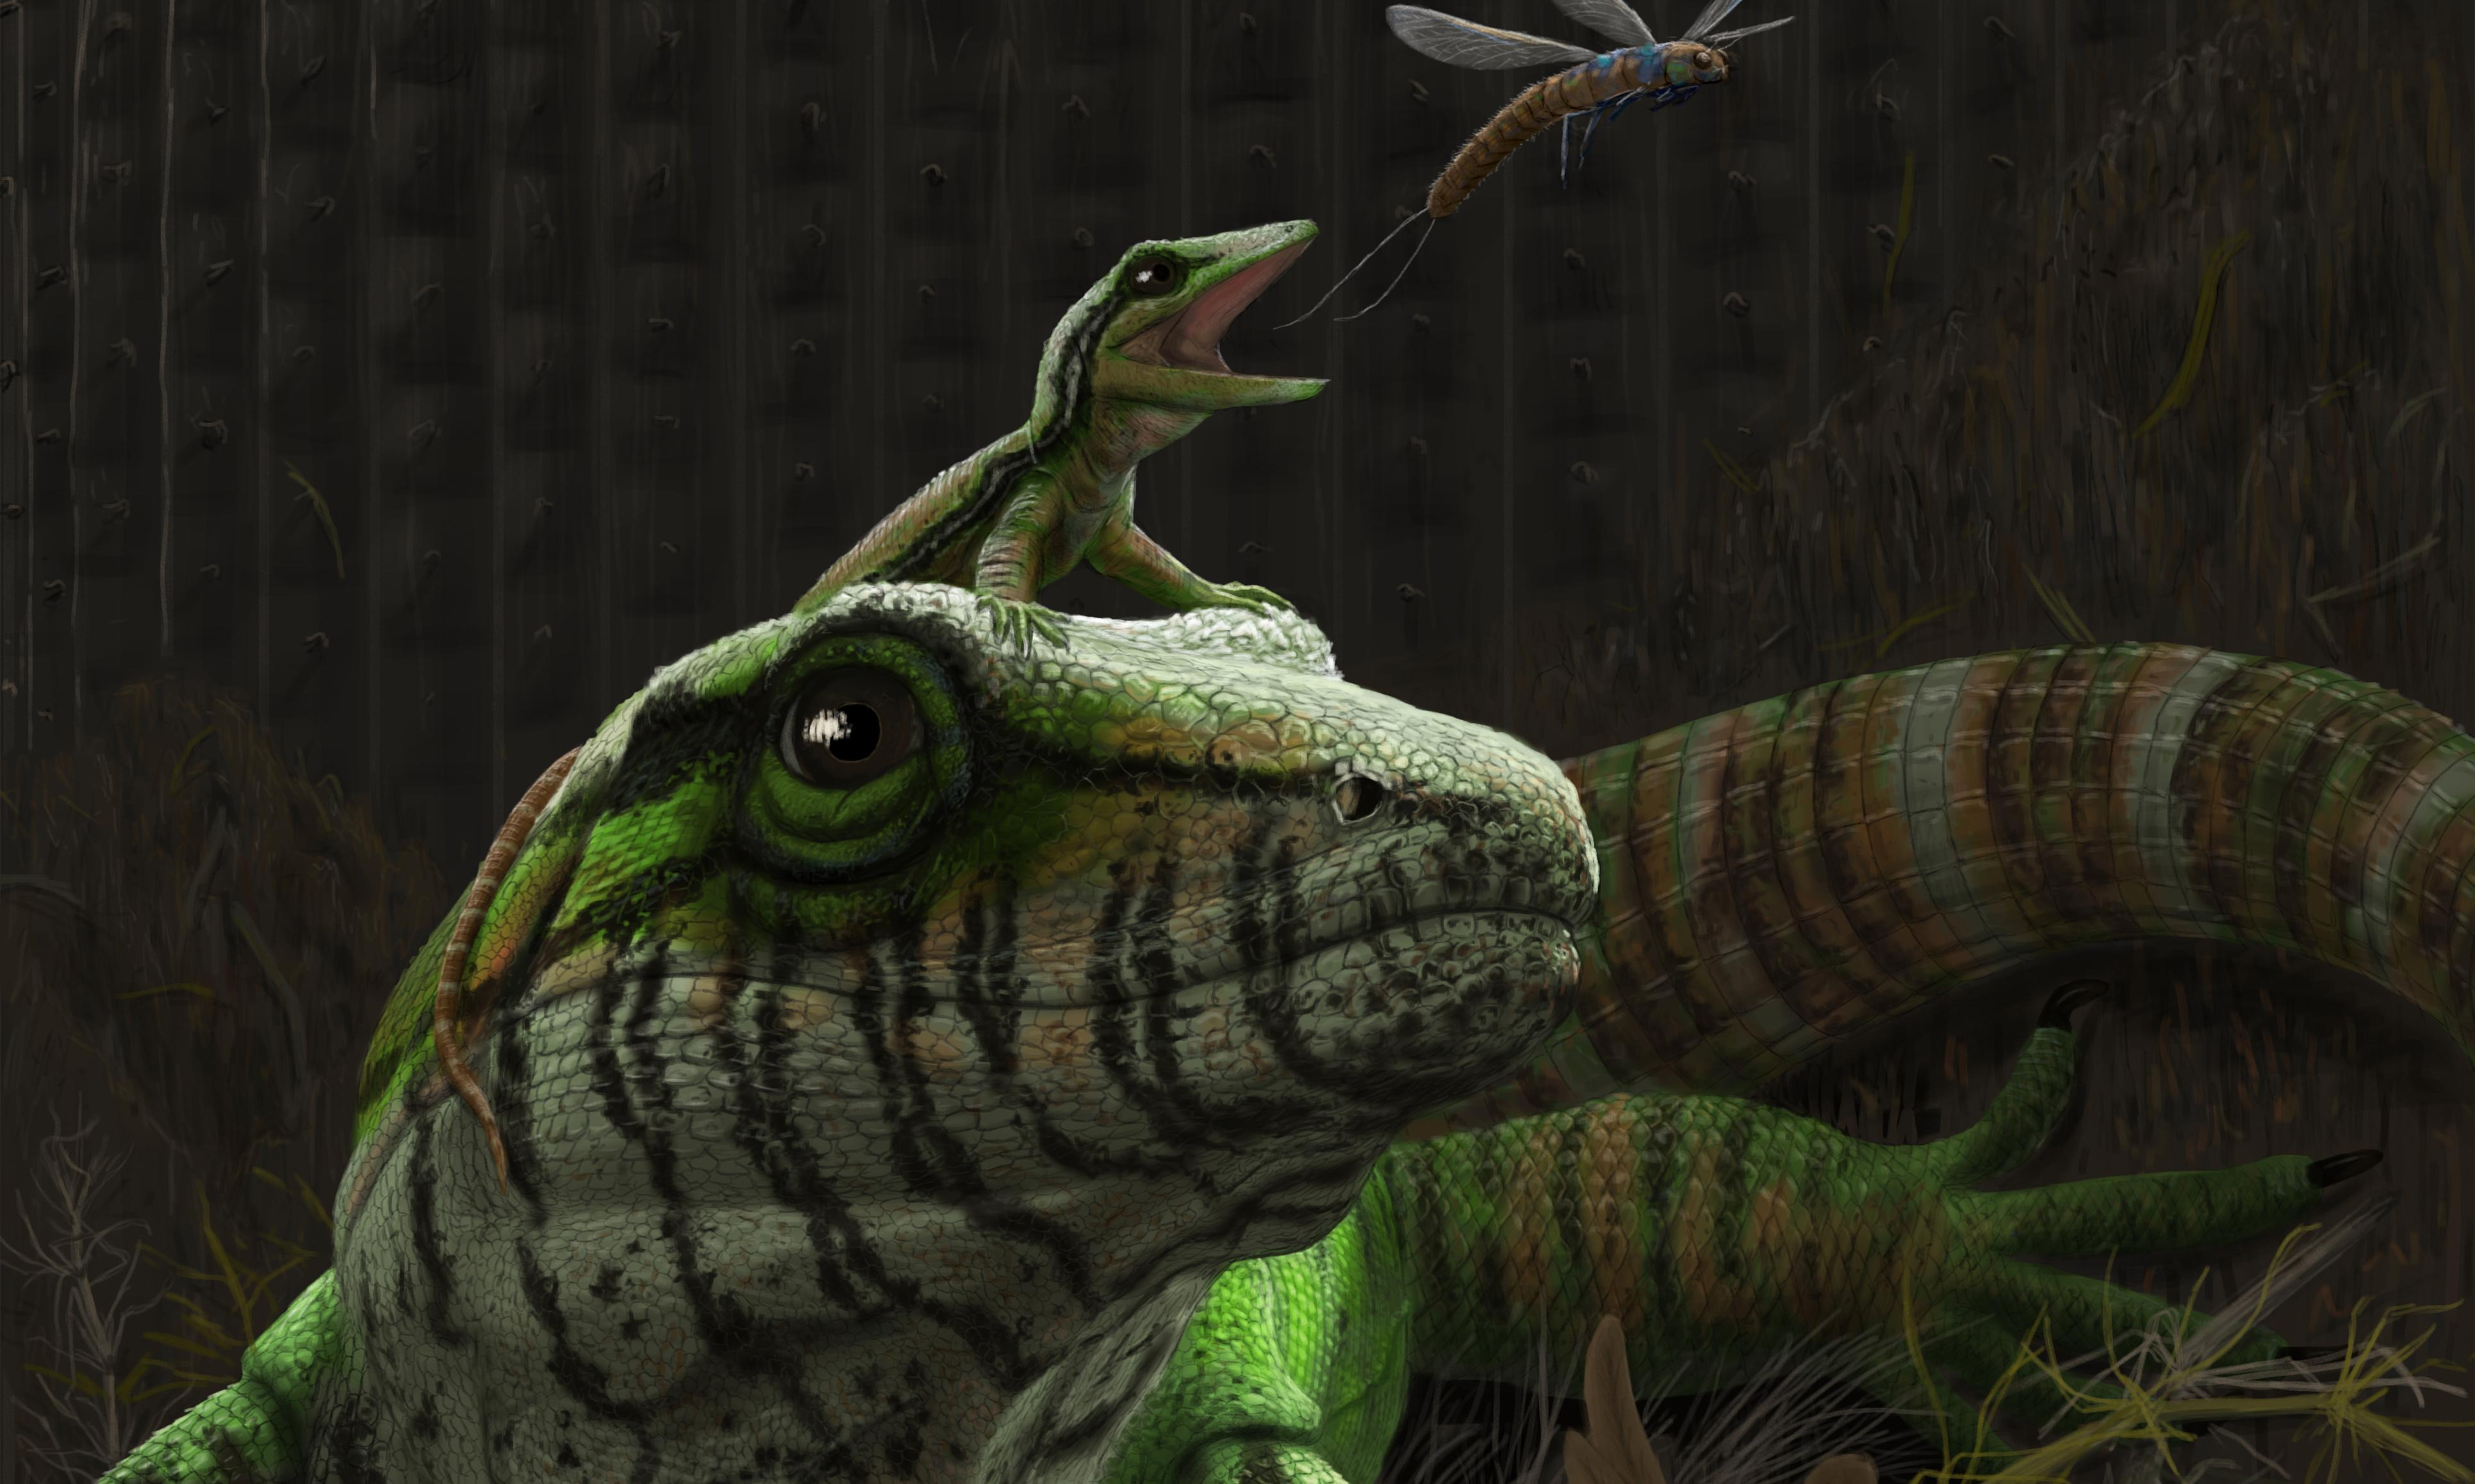 300m-year-old fossil is early sign of creatures caring for their young